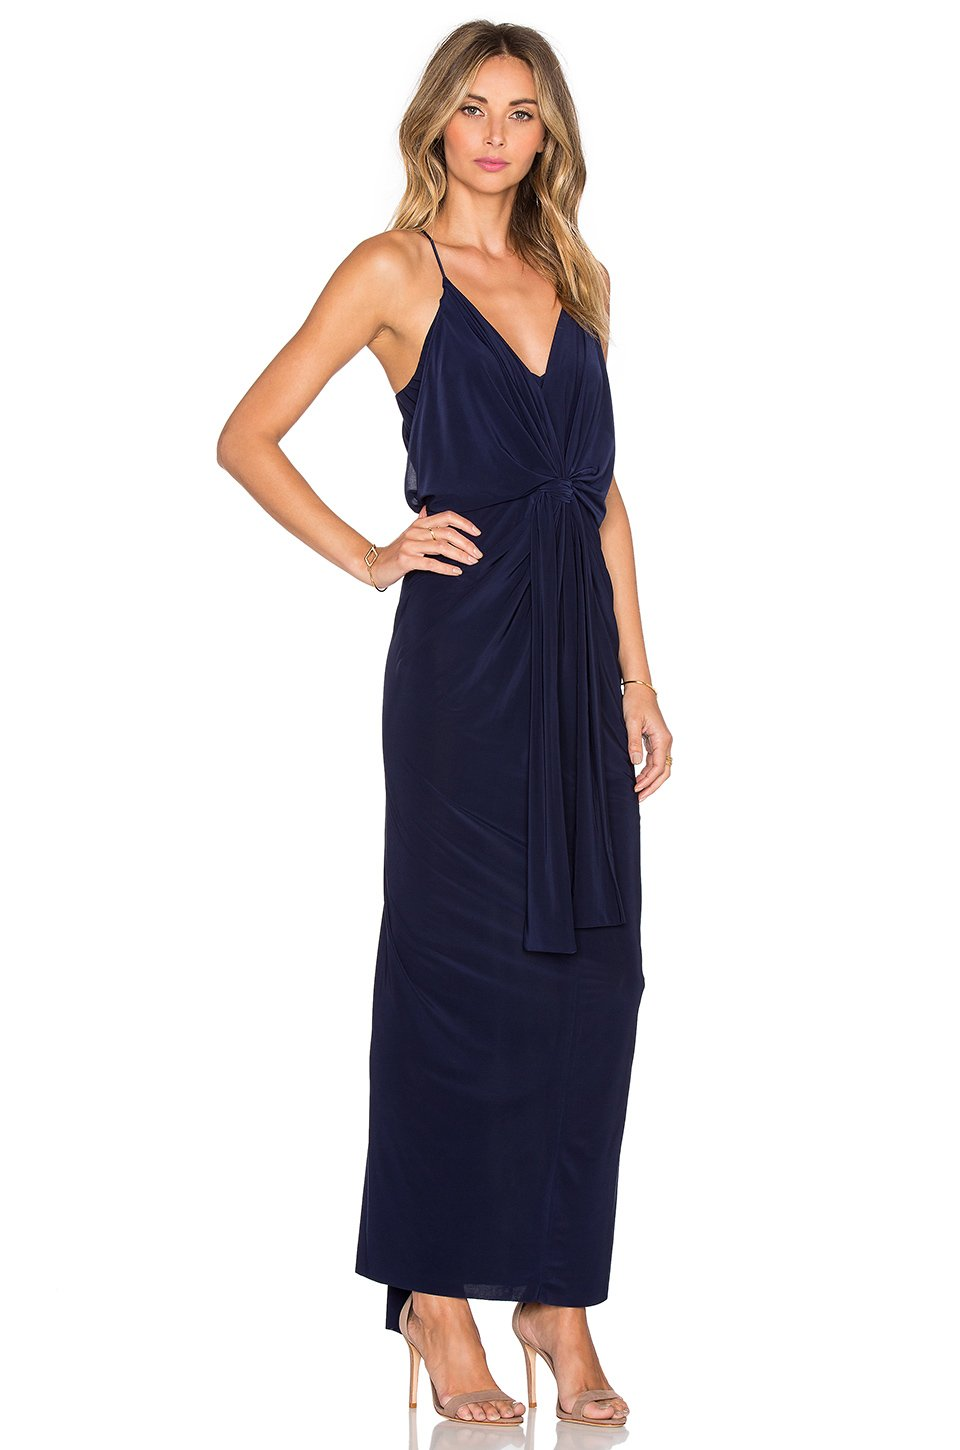 T-bags Twist Front Maxi Dress in Blue  Lyst